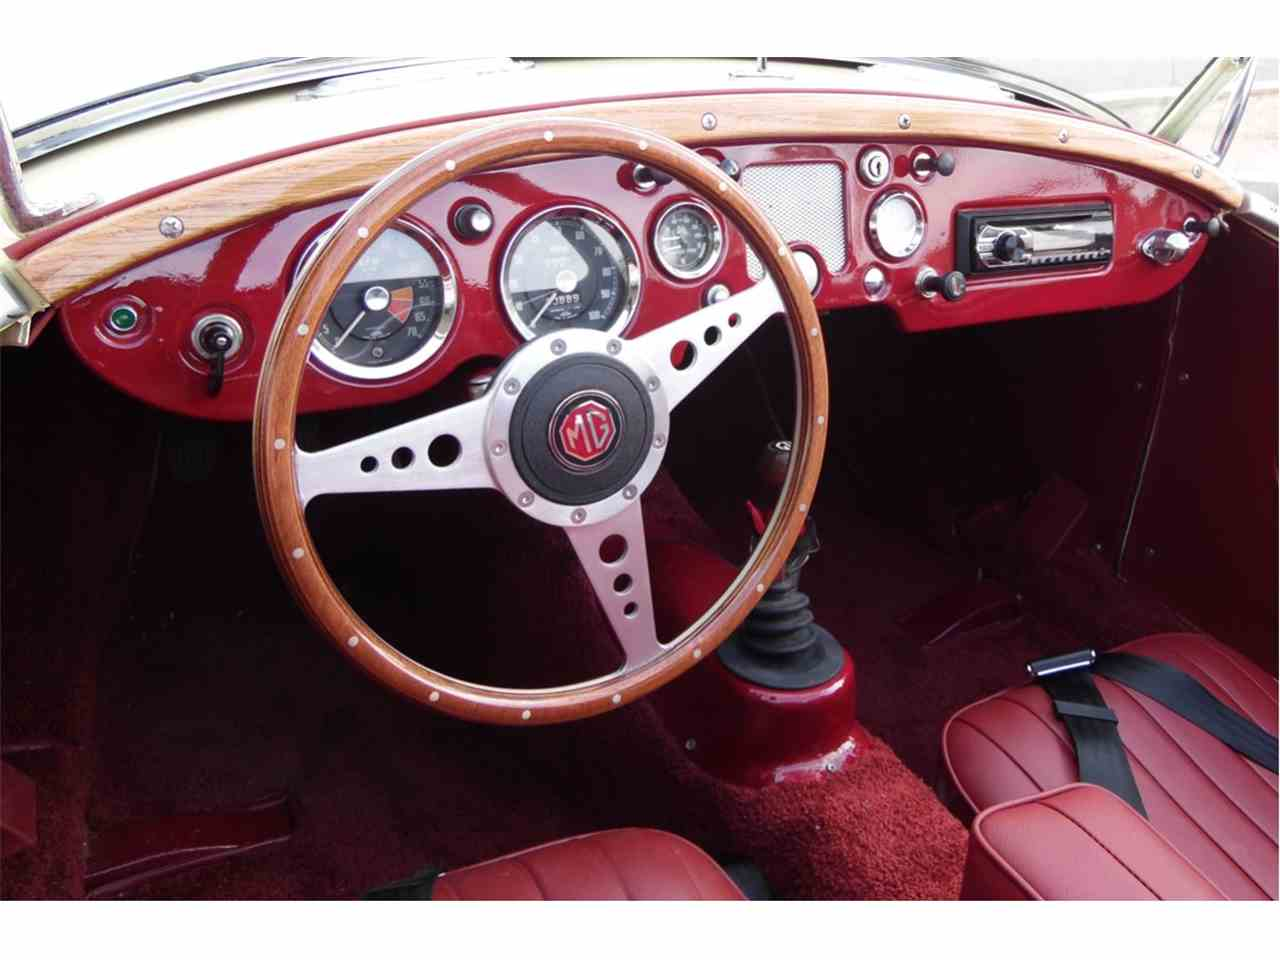 Large Picture of 1956 MG MGA located in California - $19,995.00 - JTIG